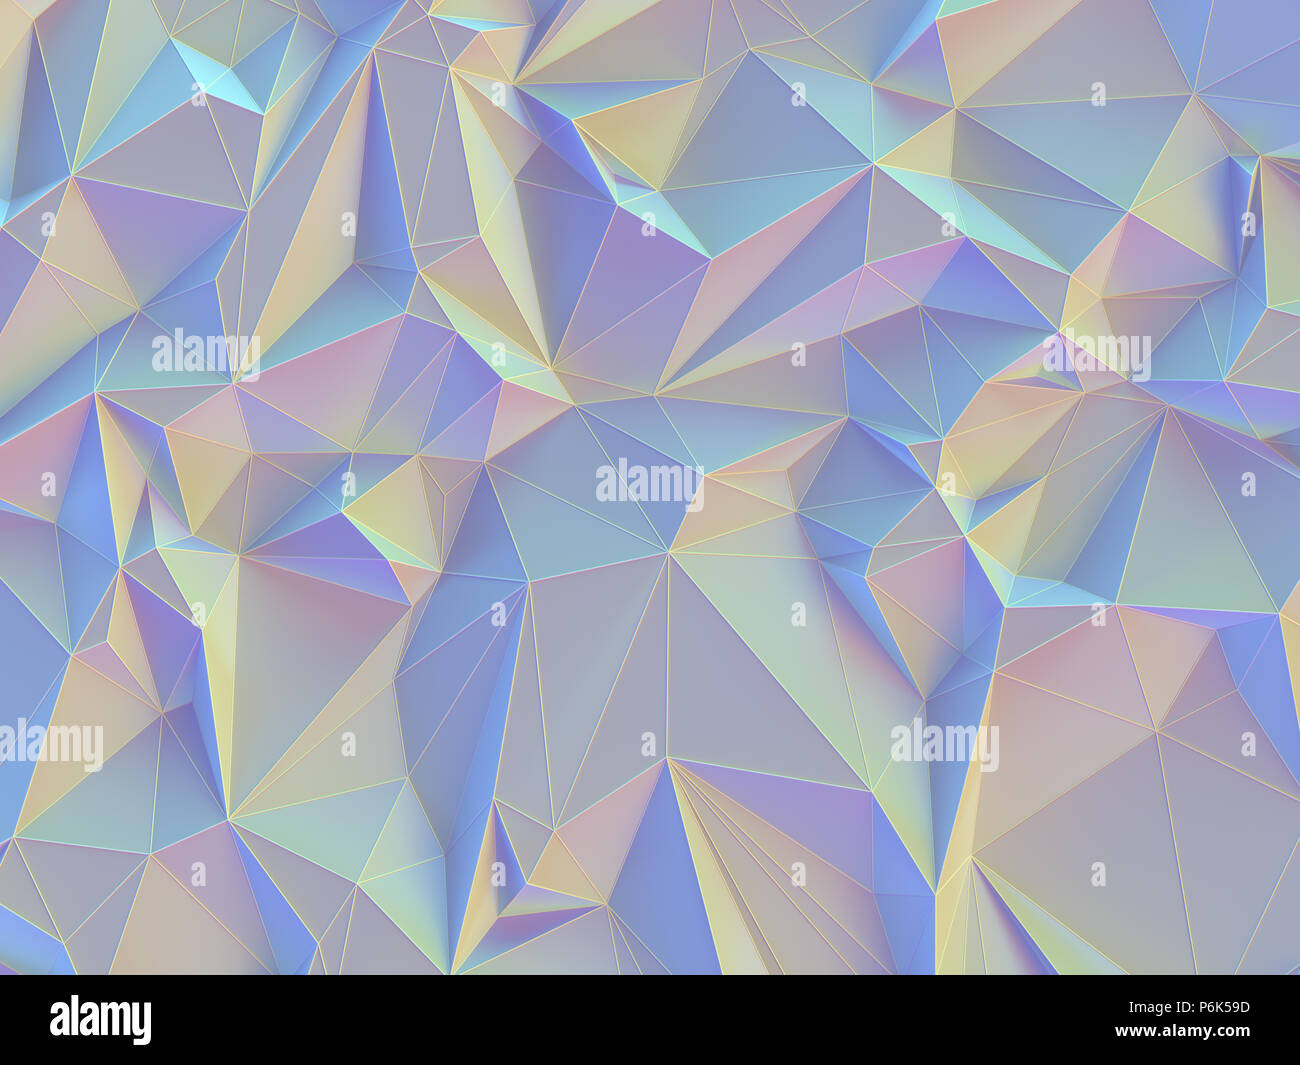 3D illustration. Abstract background image, connections in lines and geometric triangular shapes. Colorful vintage pastel. Stock Photo